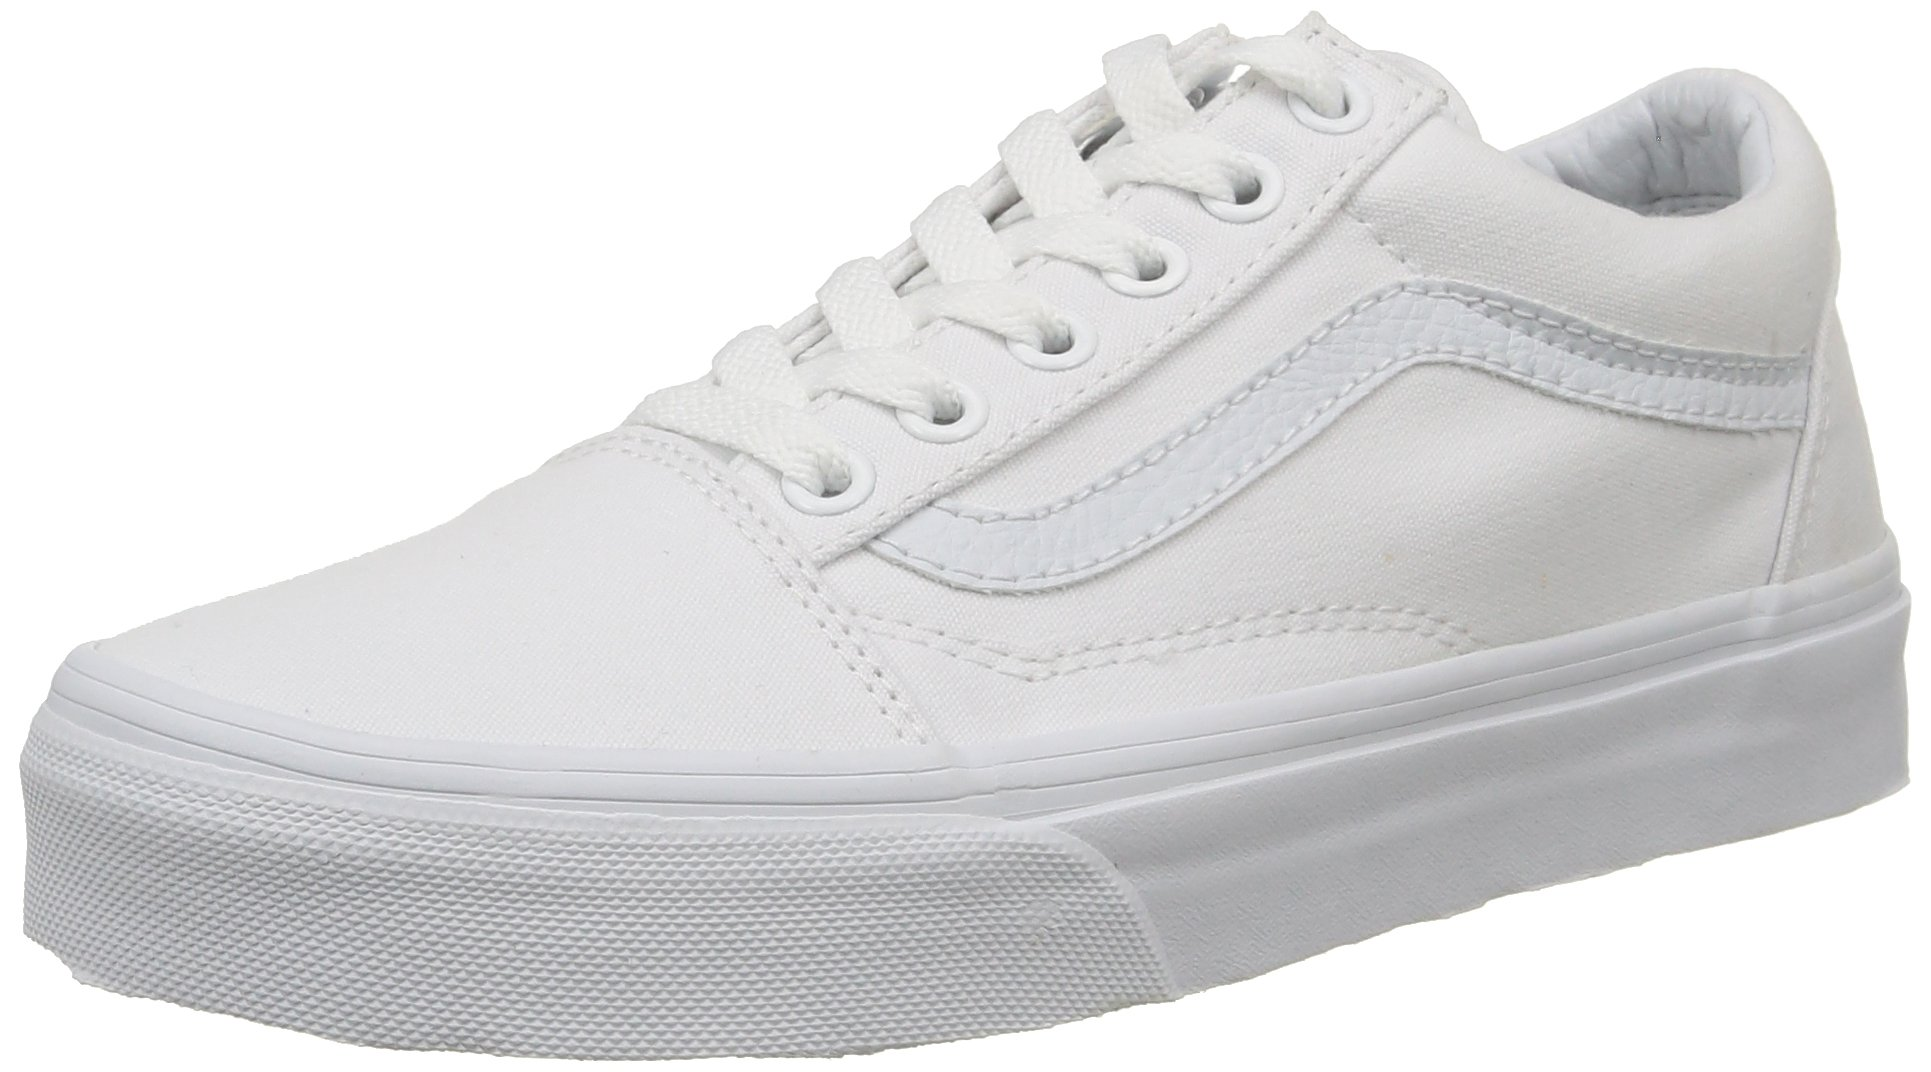 Vans Old Skool Sneaker,True White,US 14 M